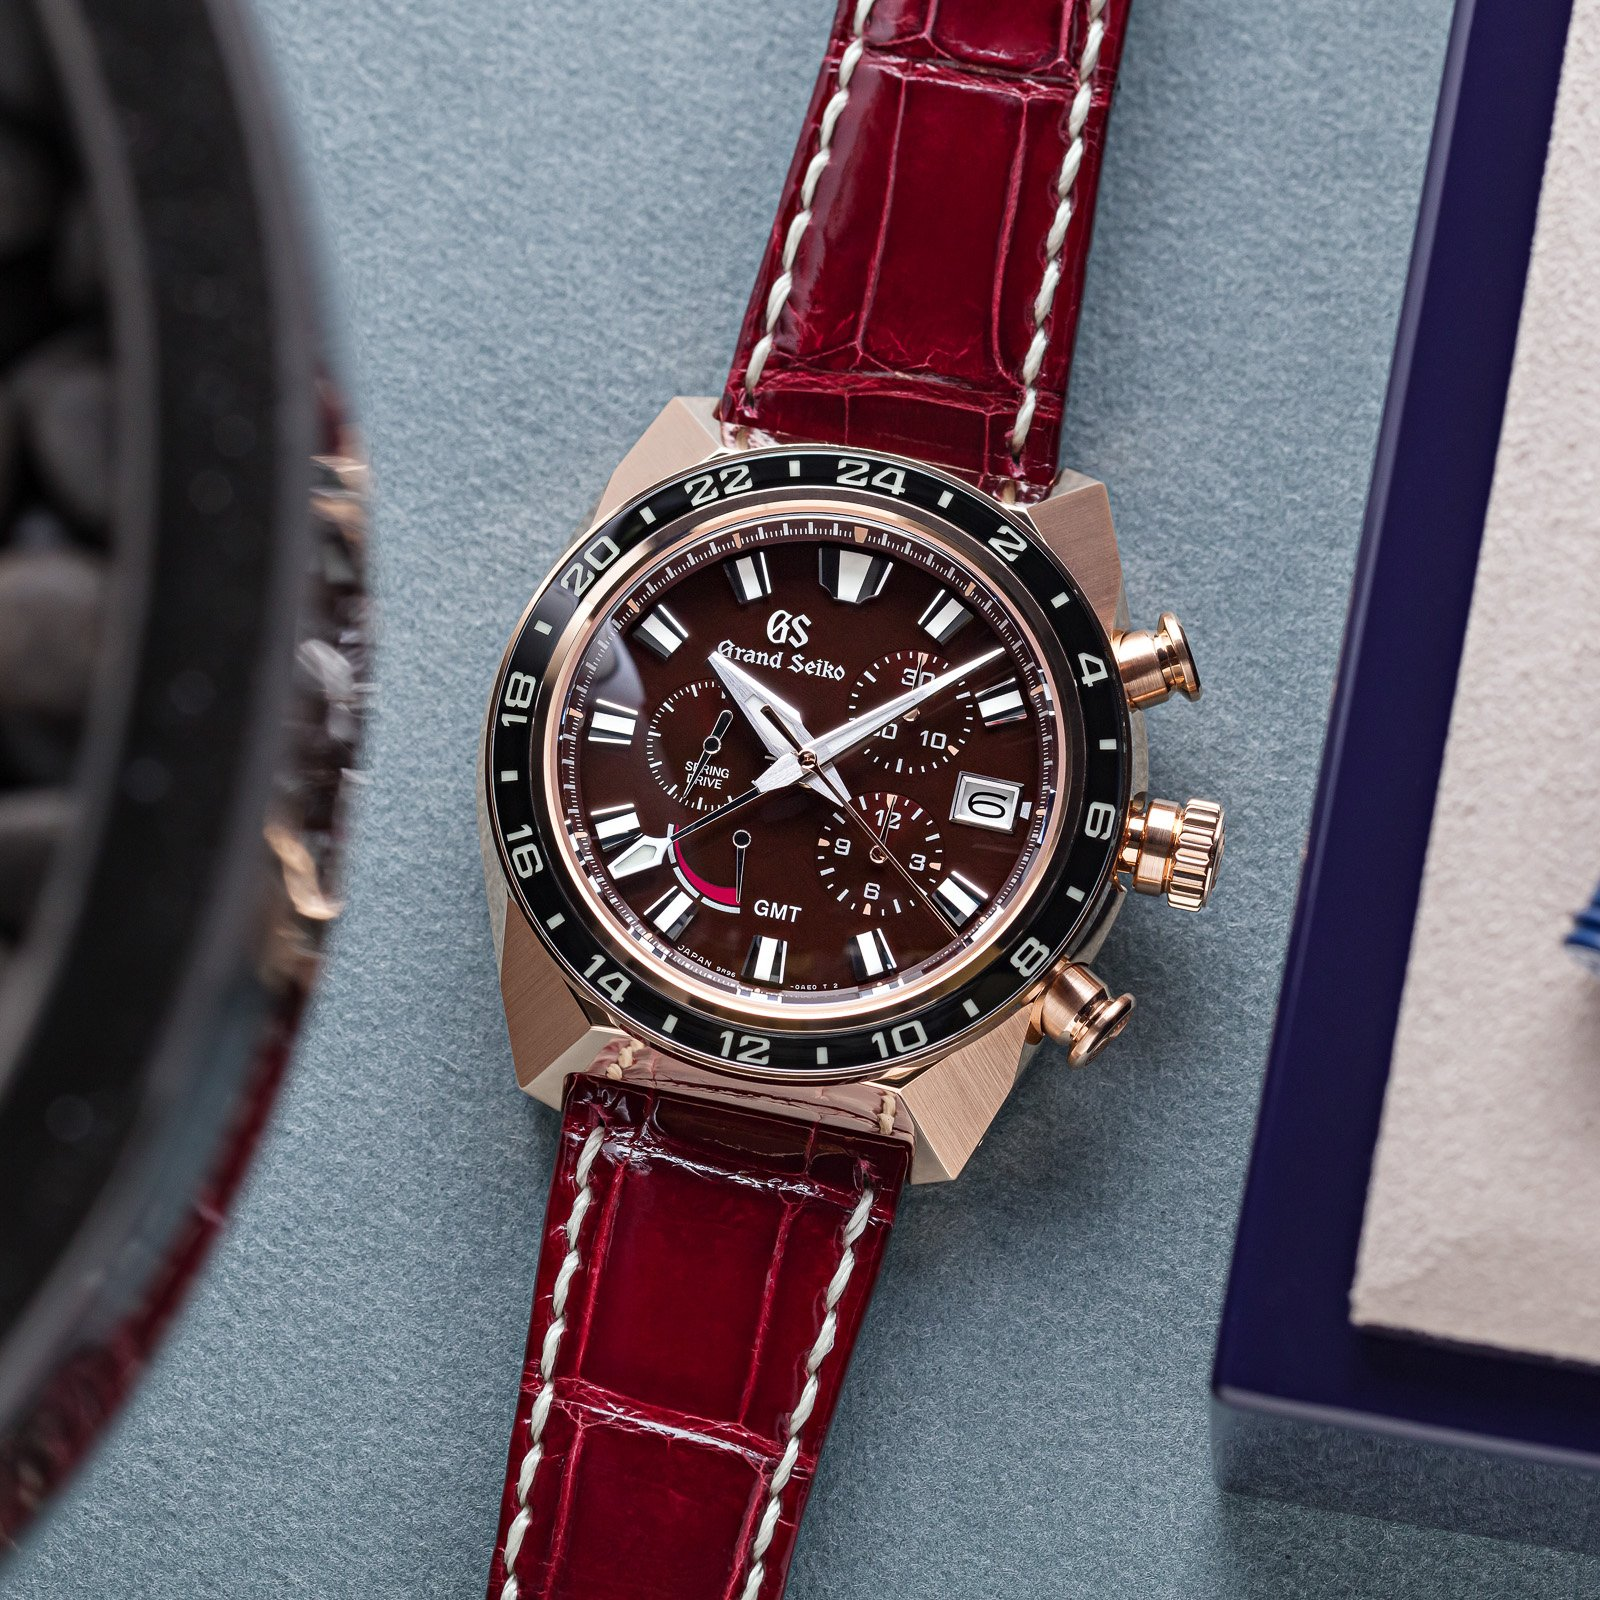 Grand Seiko Chronograph SBGC230 - gold-cased wristwatch with a red textured dial and leather strap.